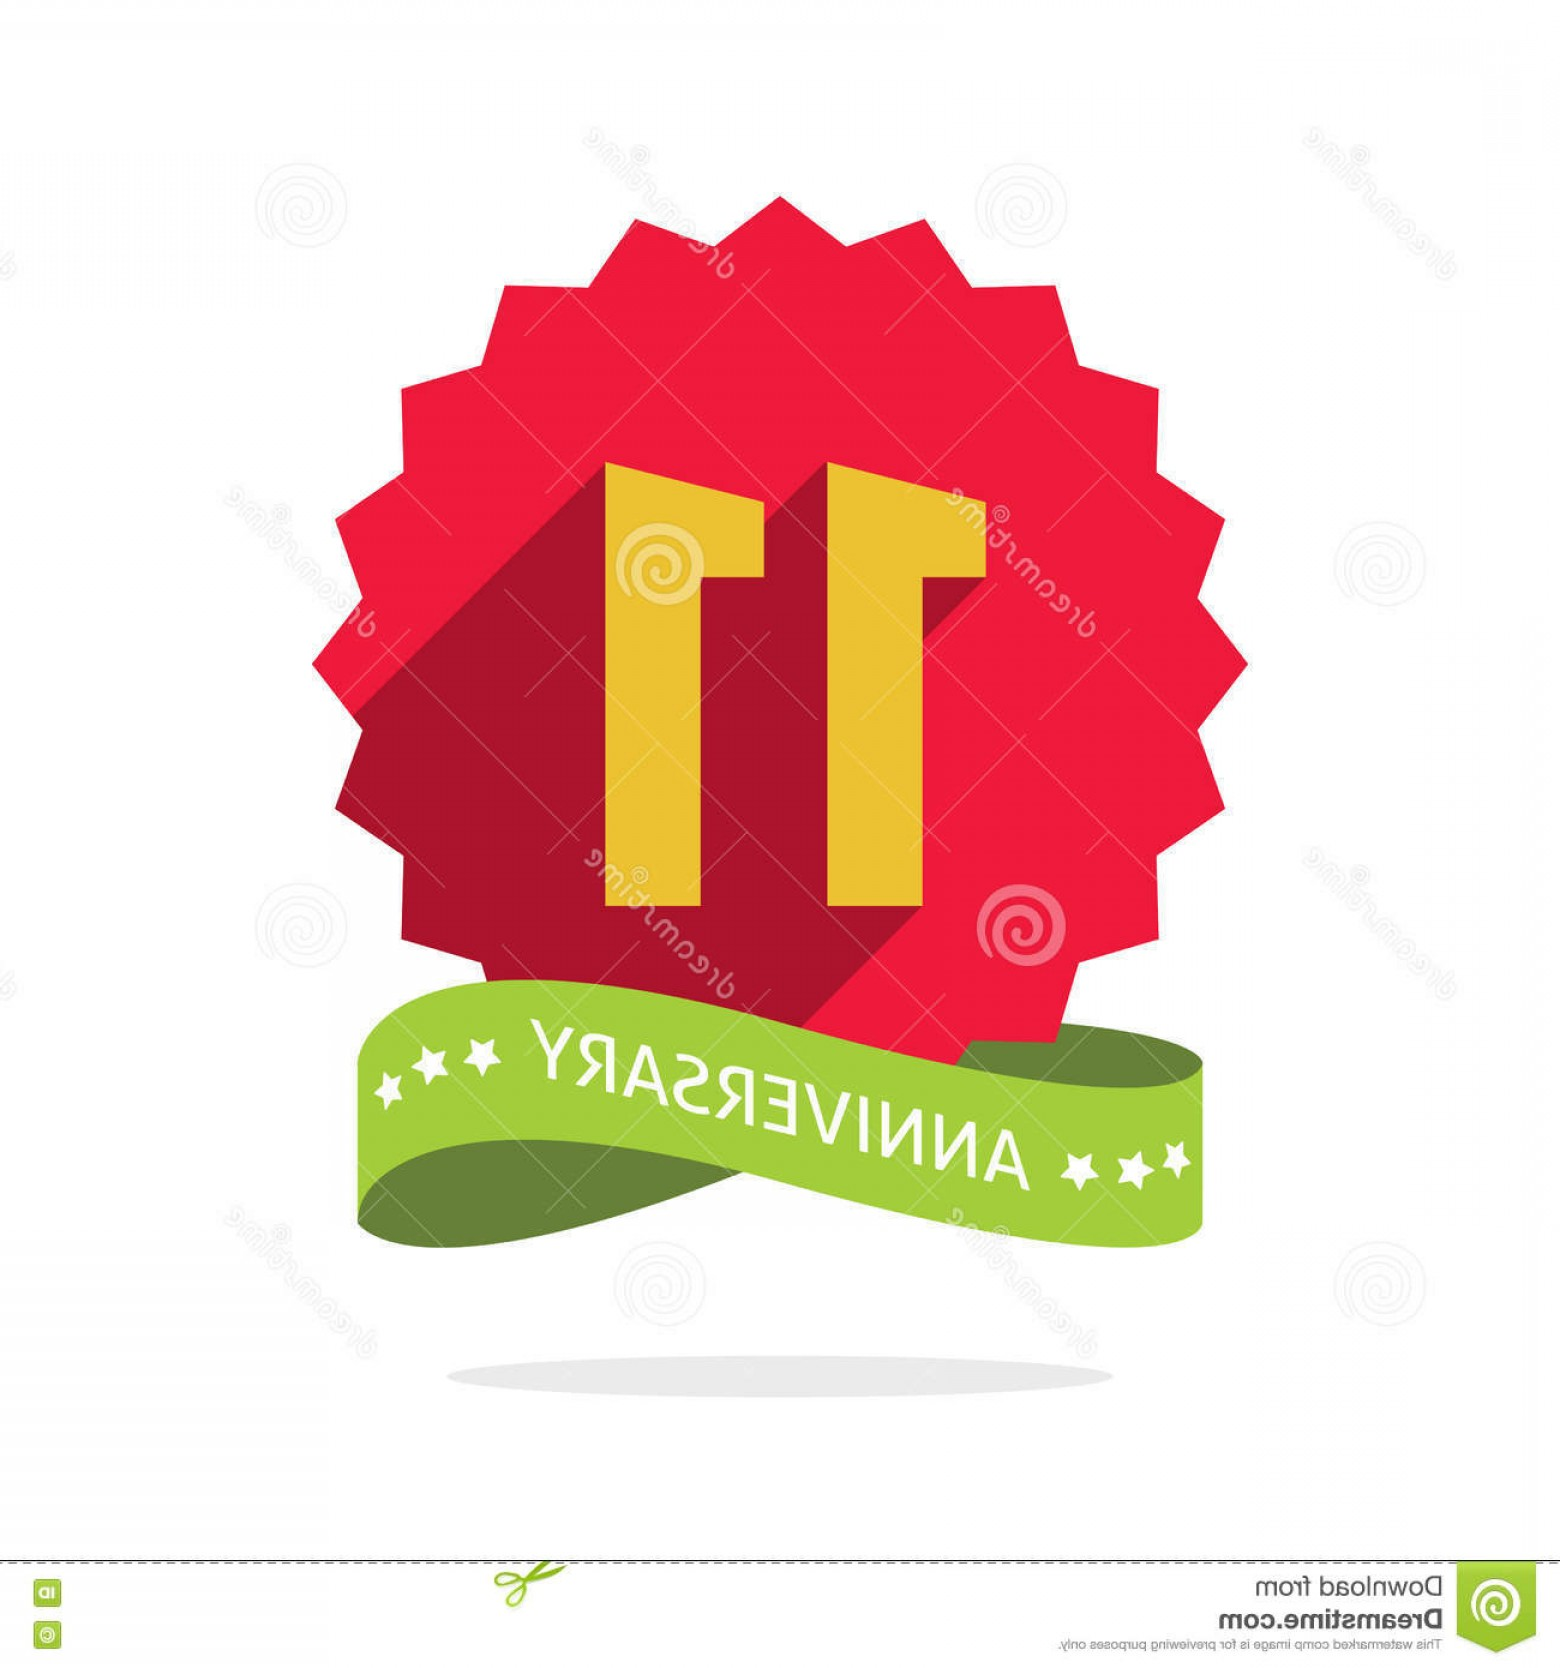 Happy Workplace Anniversary Vector: Stock Illustration Anniversary Th Badge Shadow Red Starburst Yellow Number Eleven Years Icon Eleventh Years Symbol Ribbon Image